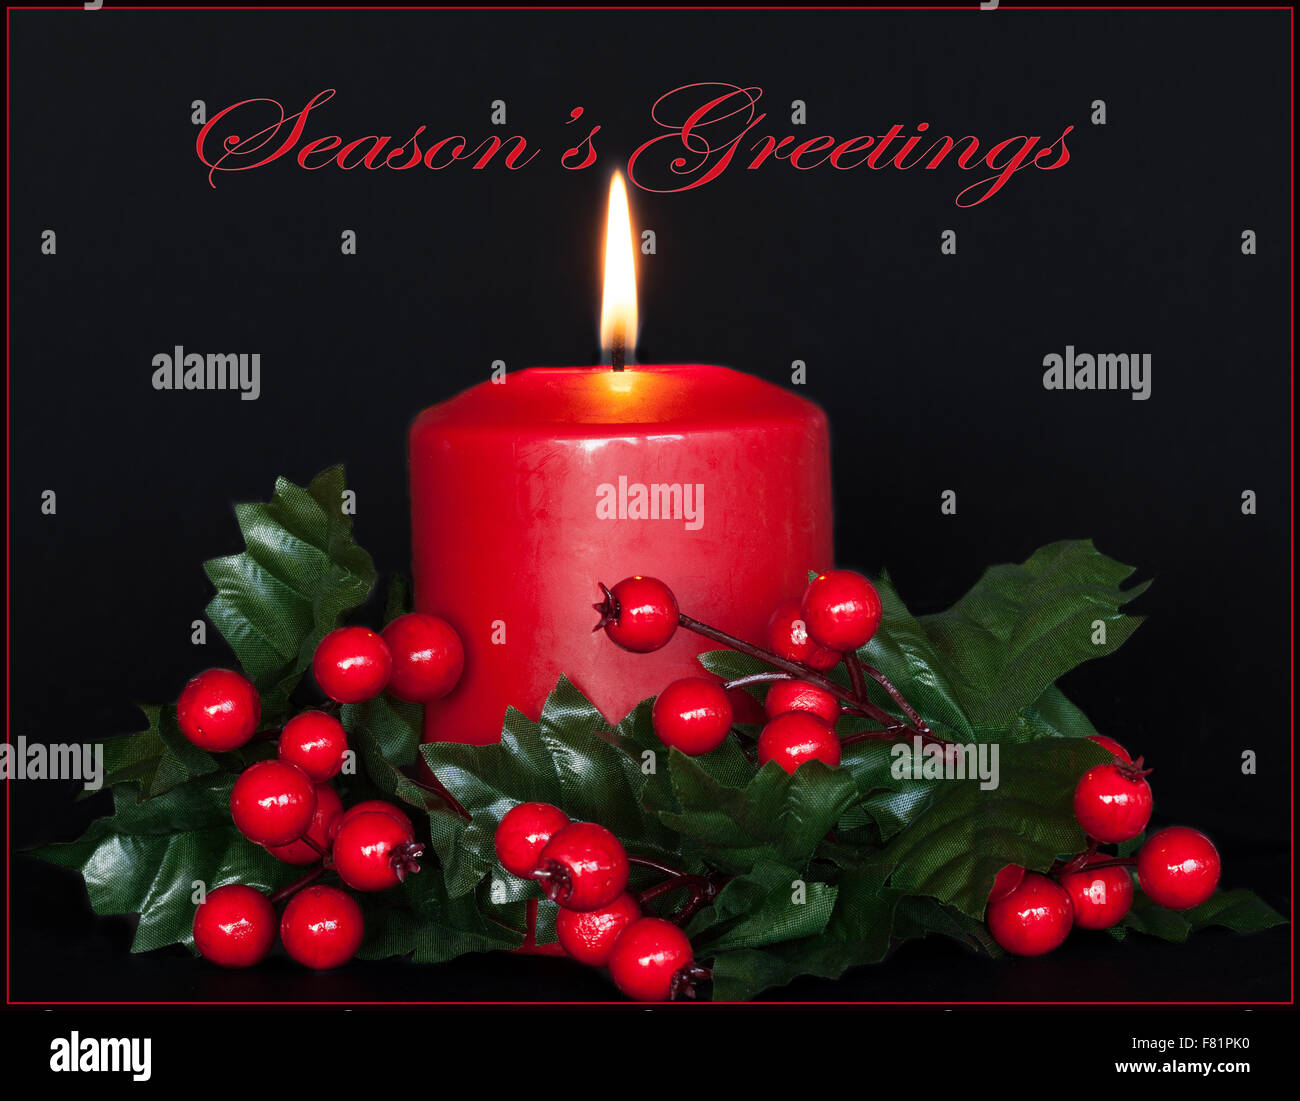 Seasons  Greetings card with red candle and holly branches. - Stock Image